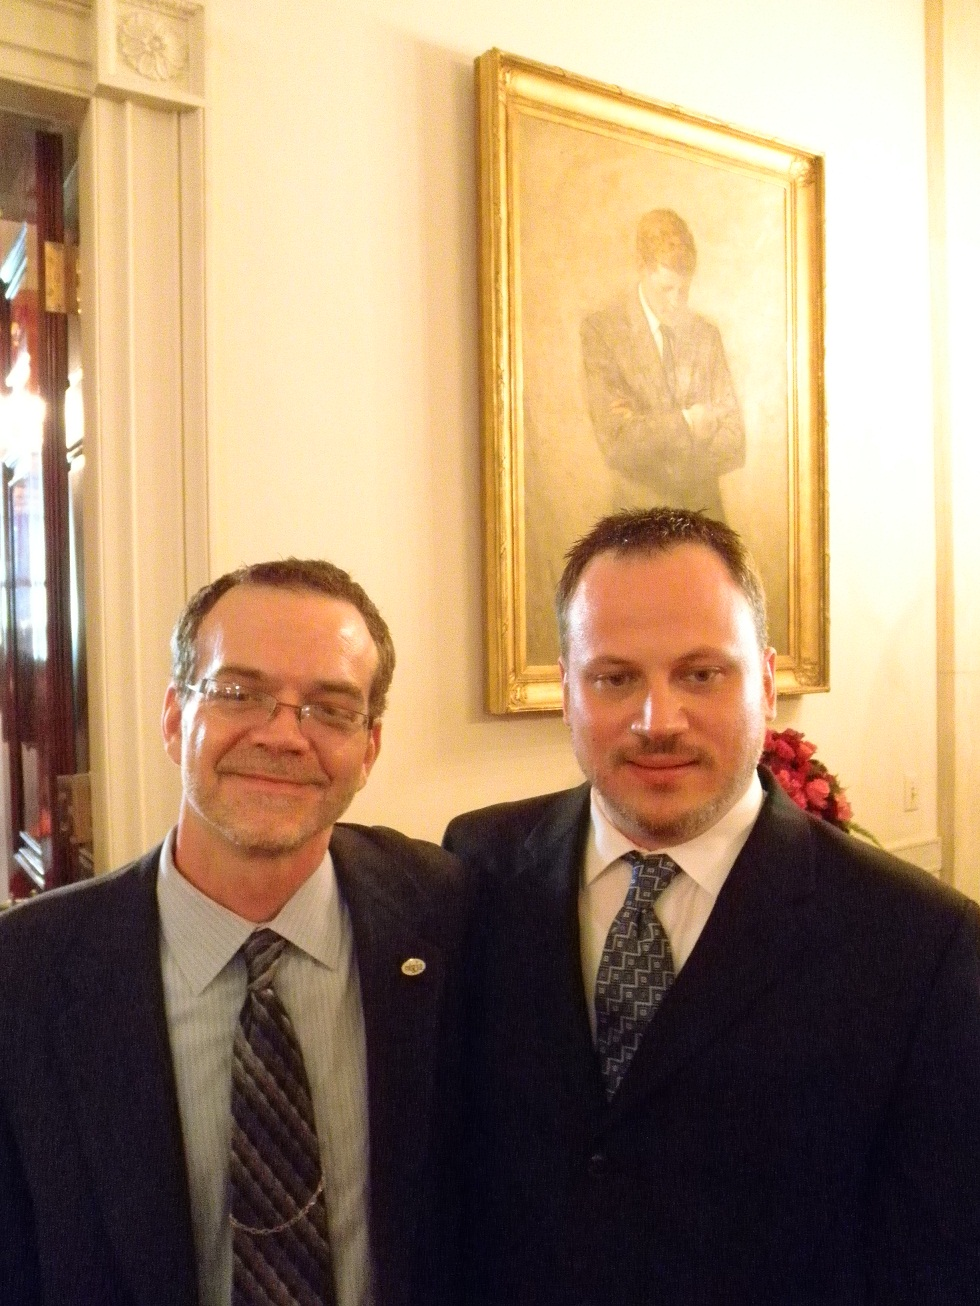 Photo: Bil Browning of The Bilerico Project and Jerame Davis of National Stonewall Democrats.